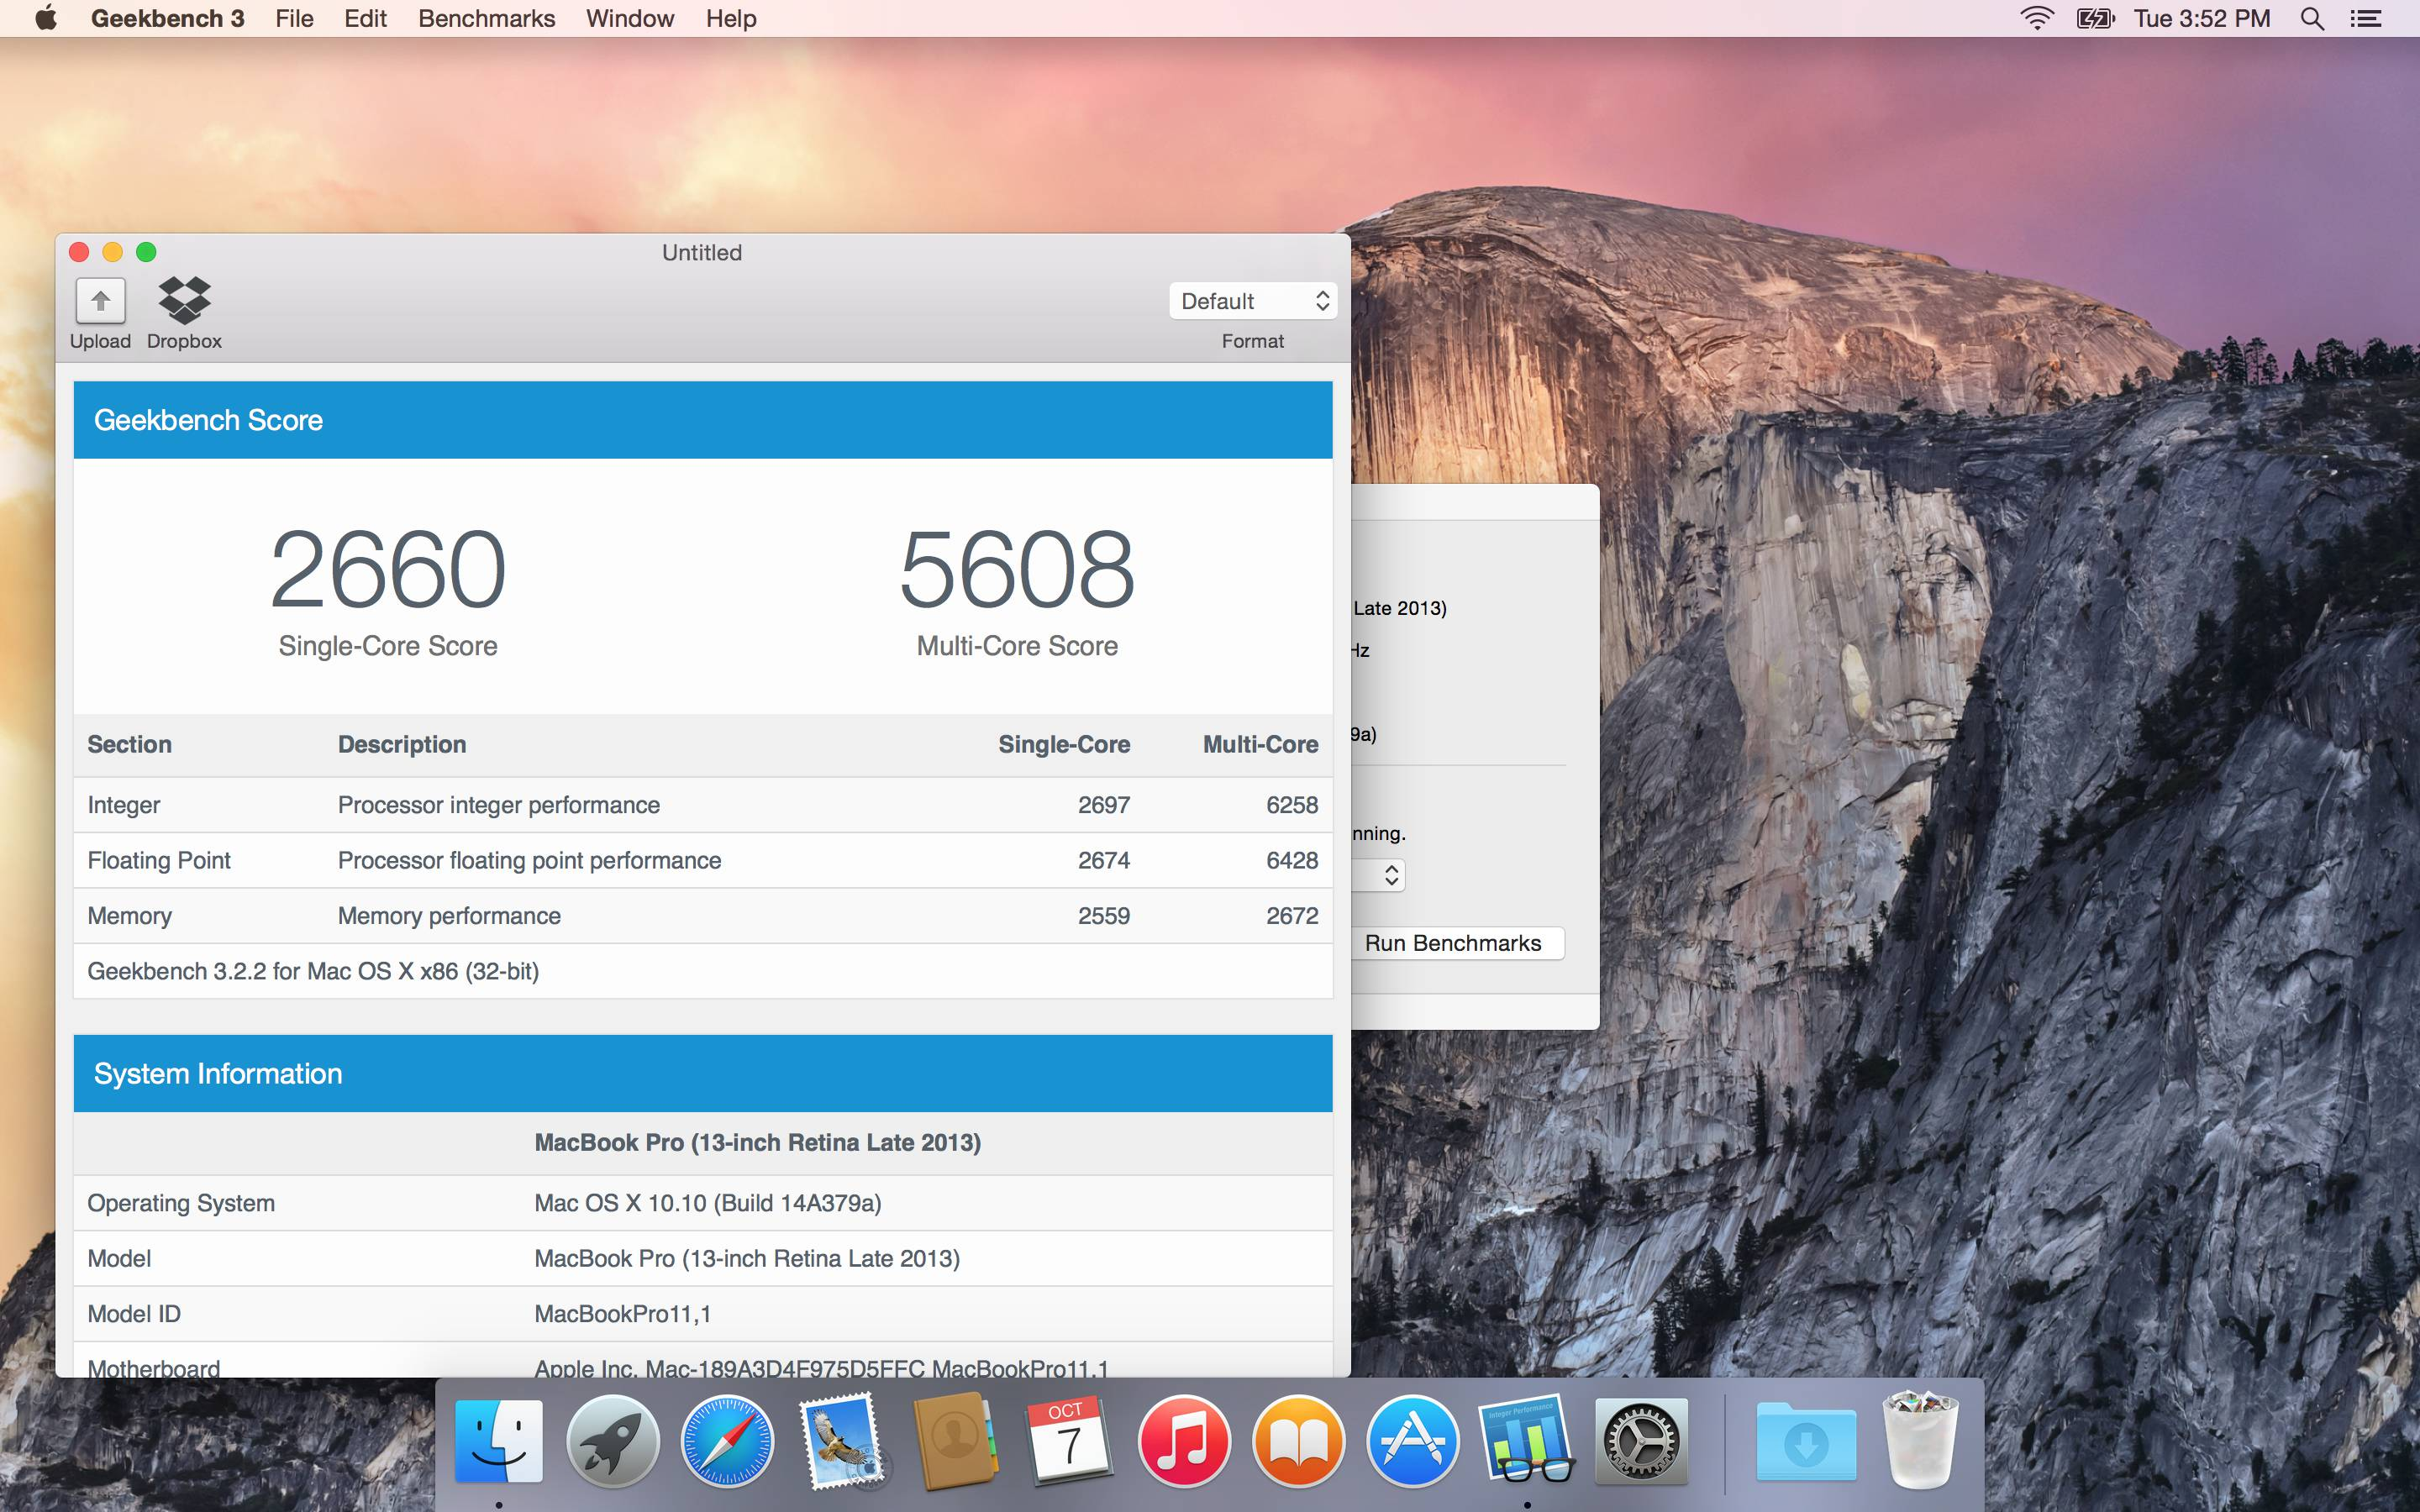 Geekbench for Mac OS X